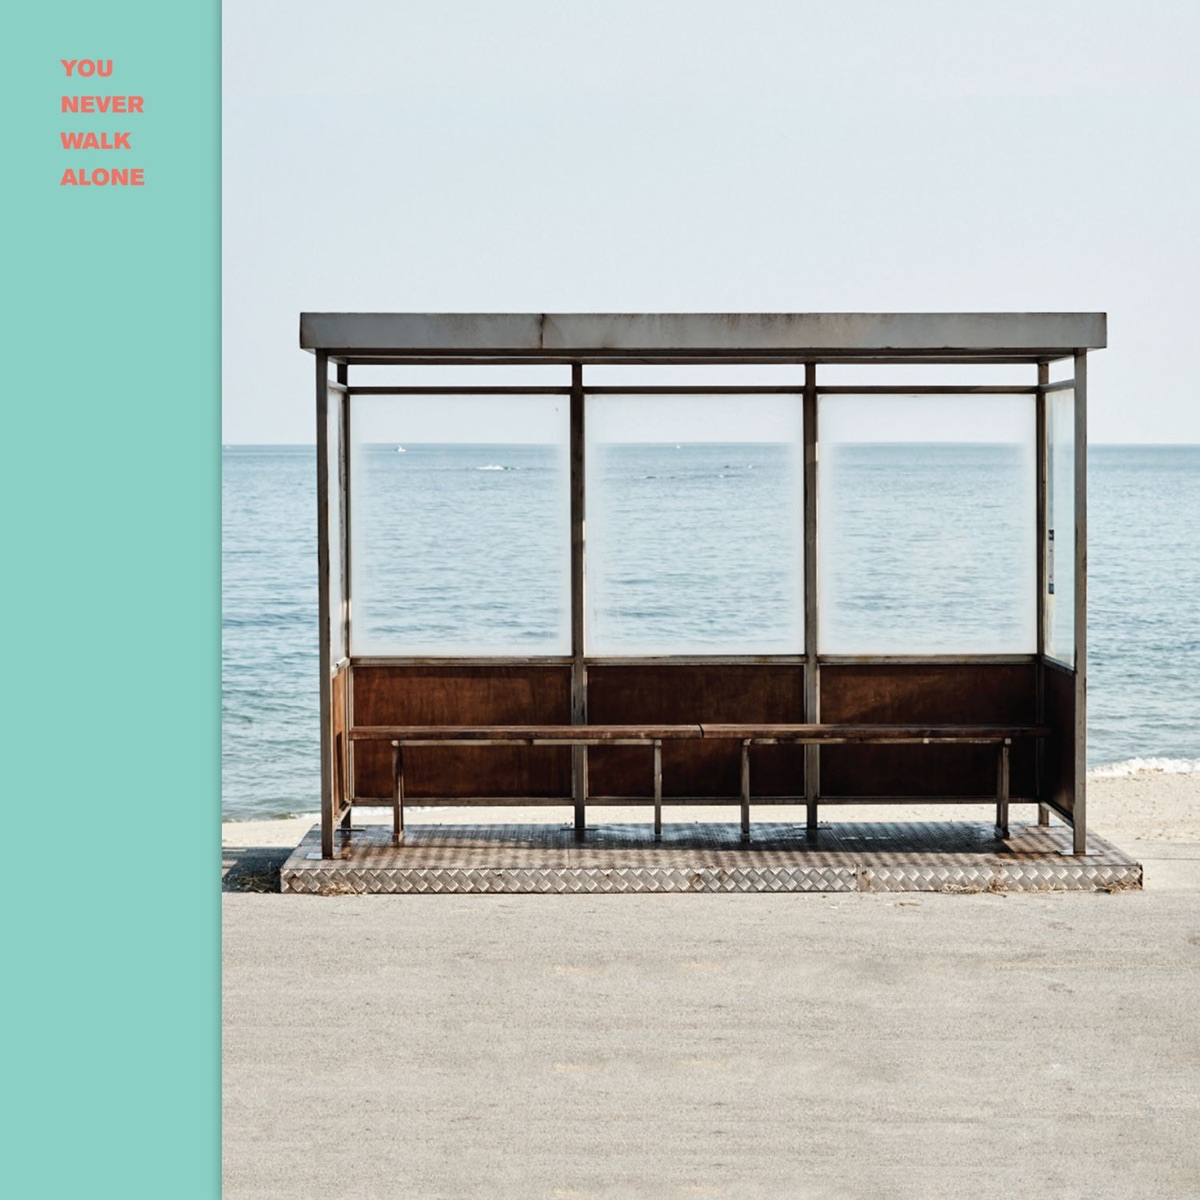 You Never Walk Alone BTS CD cover